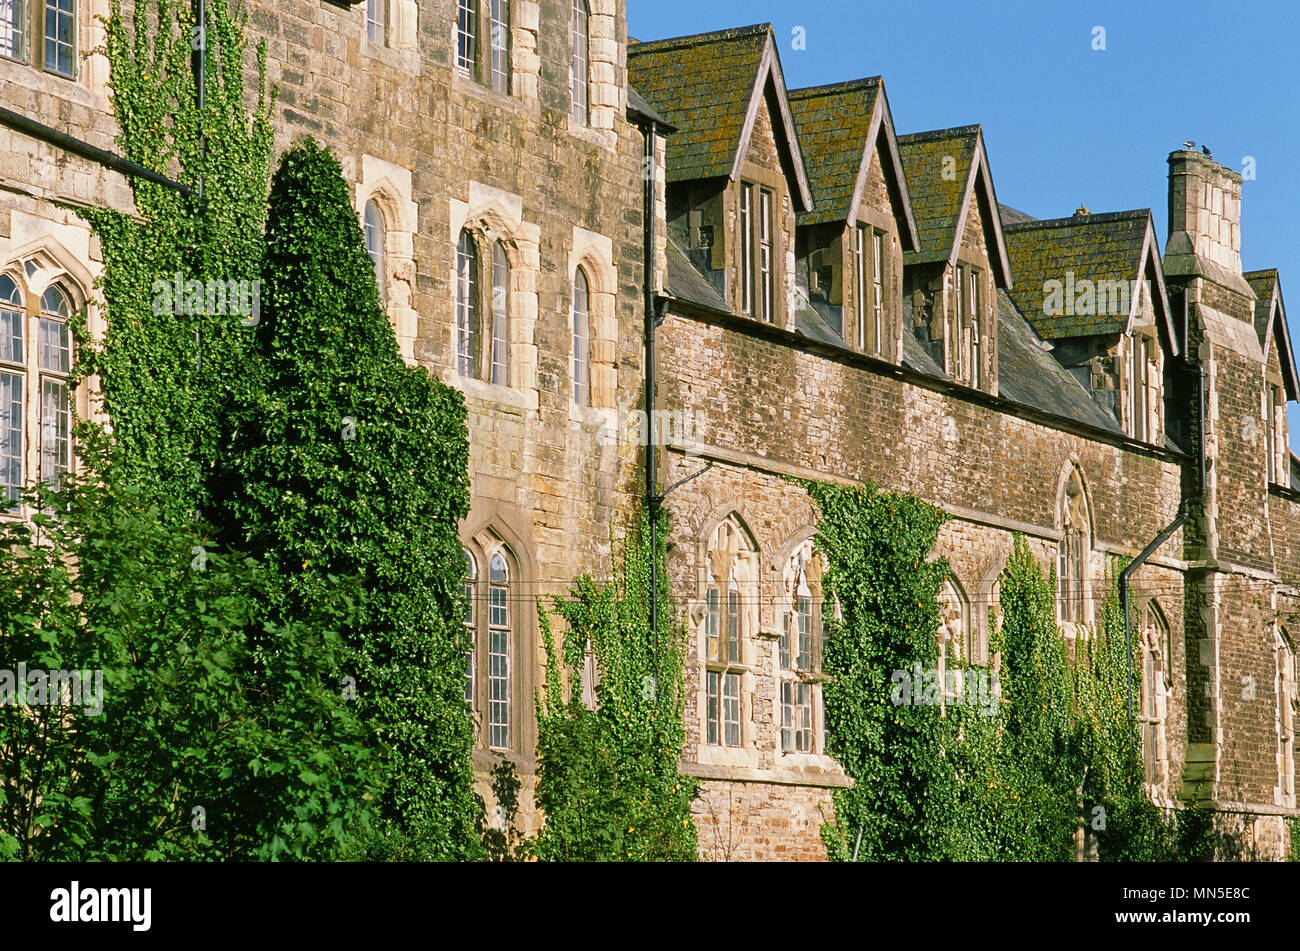 The Victorian Gothic exterior of the Holy Child English language school in Magdelan Road, St Leonards On Sea, Hastings, East Sussex UK - Stock Image